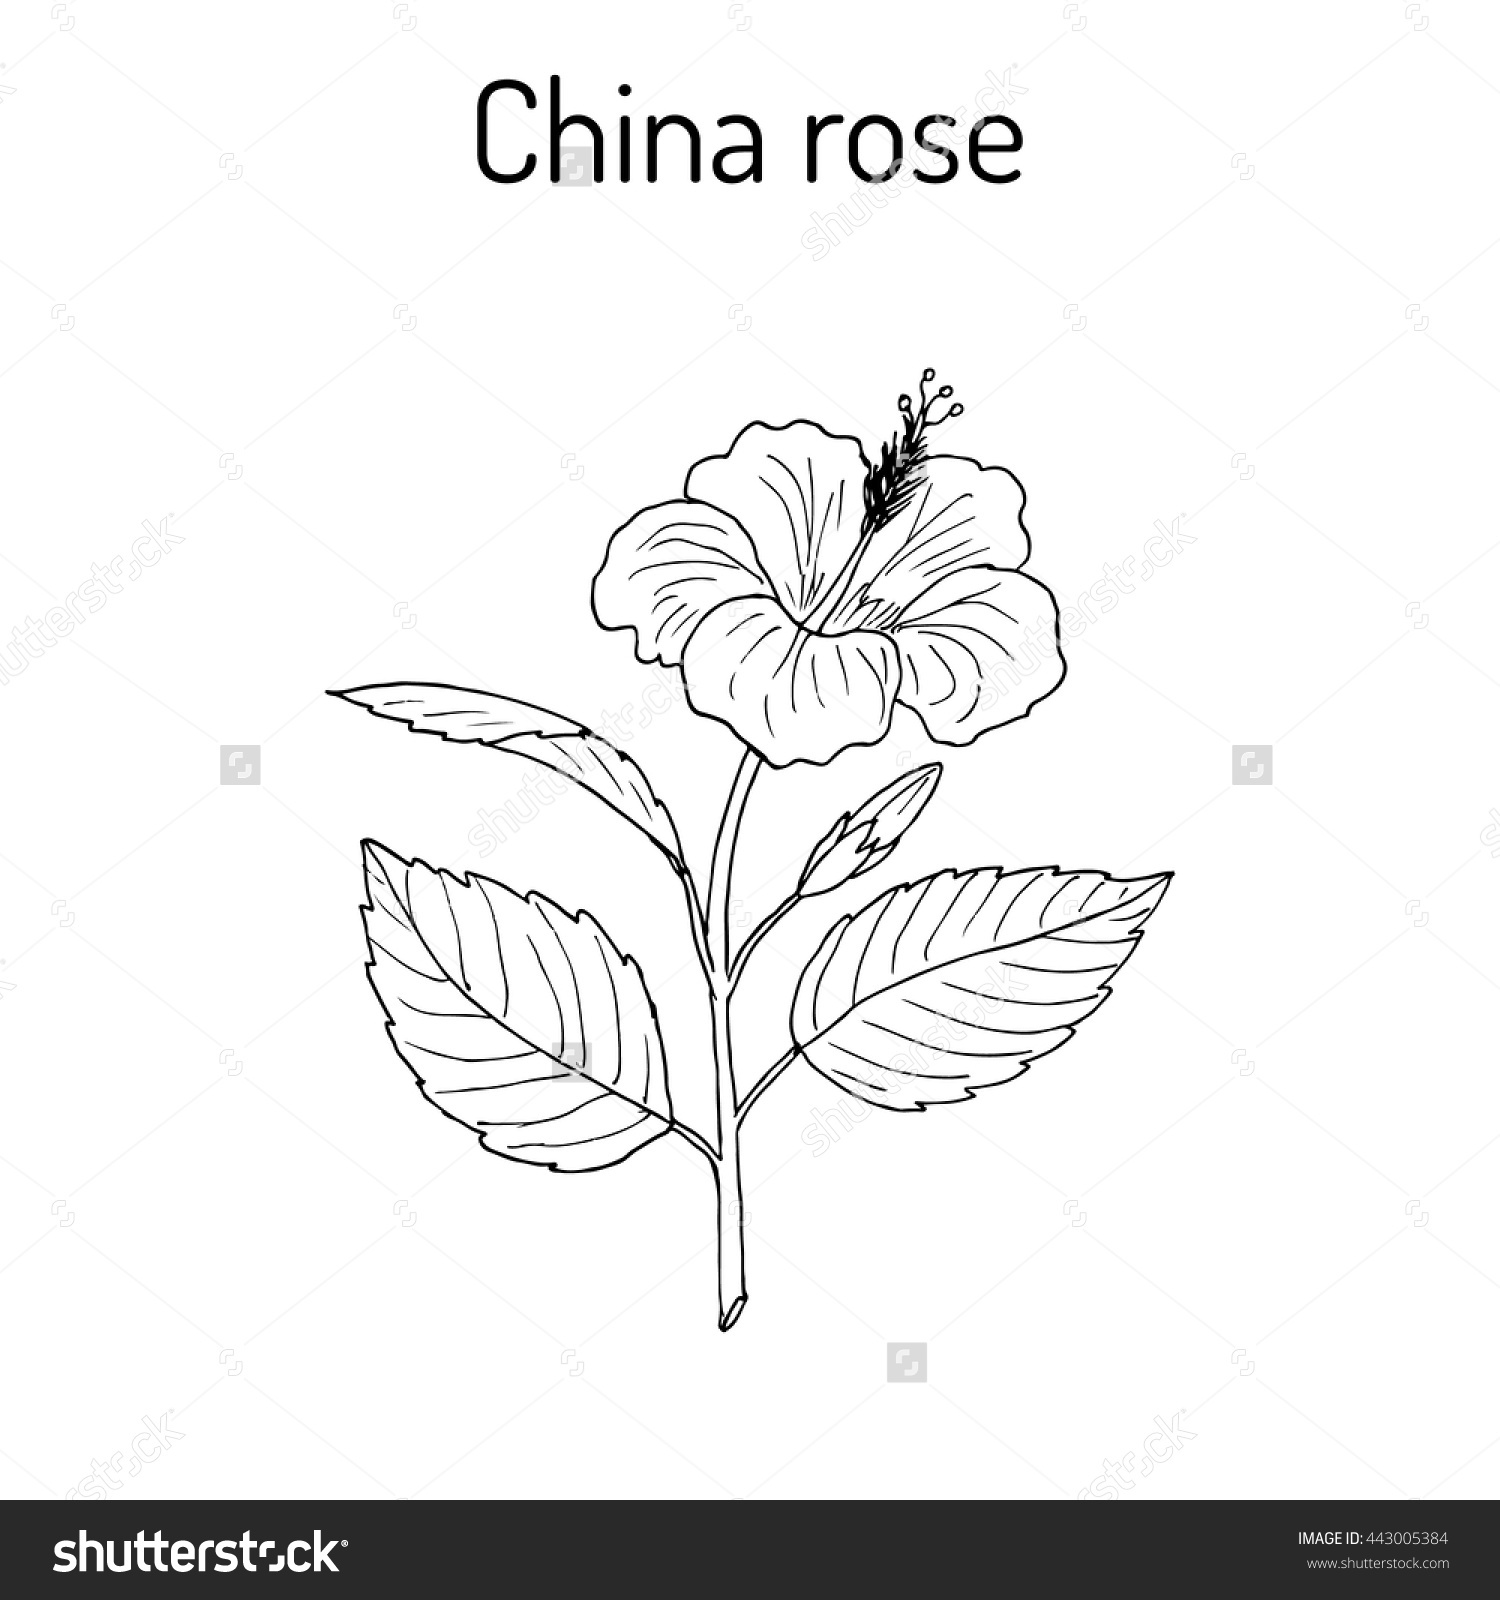 1500x1600 China Rose Clipart